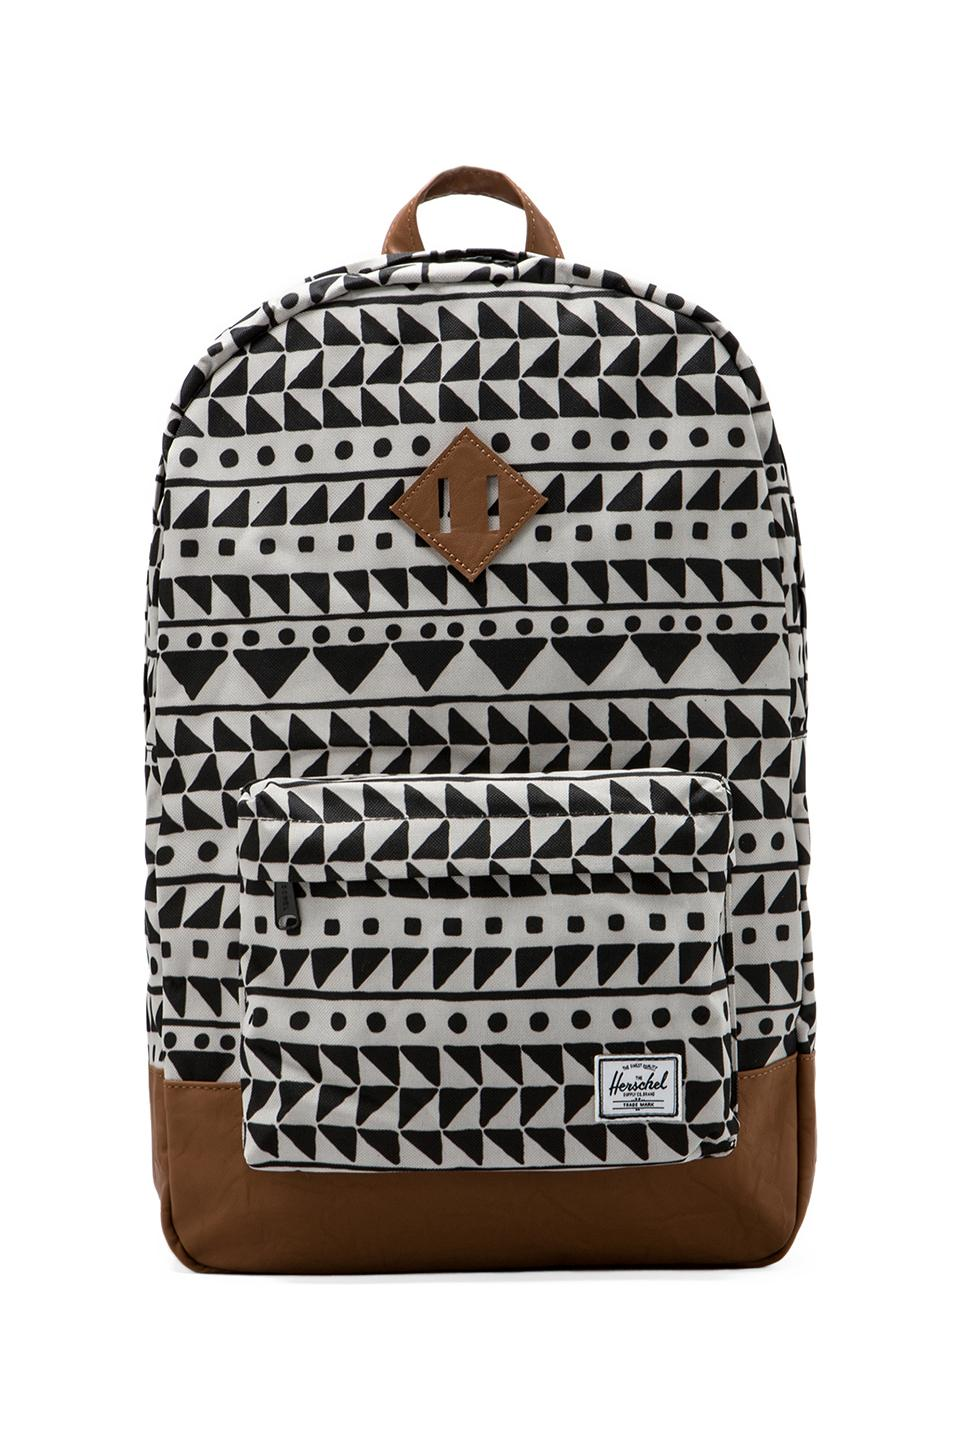 Herschel Supply Co. Sac à dos Heritage en Chevron Black